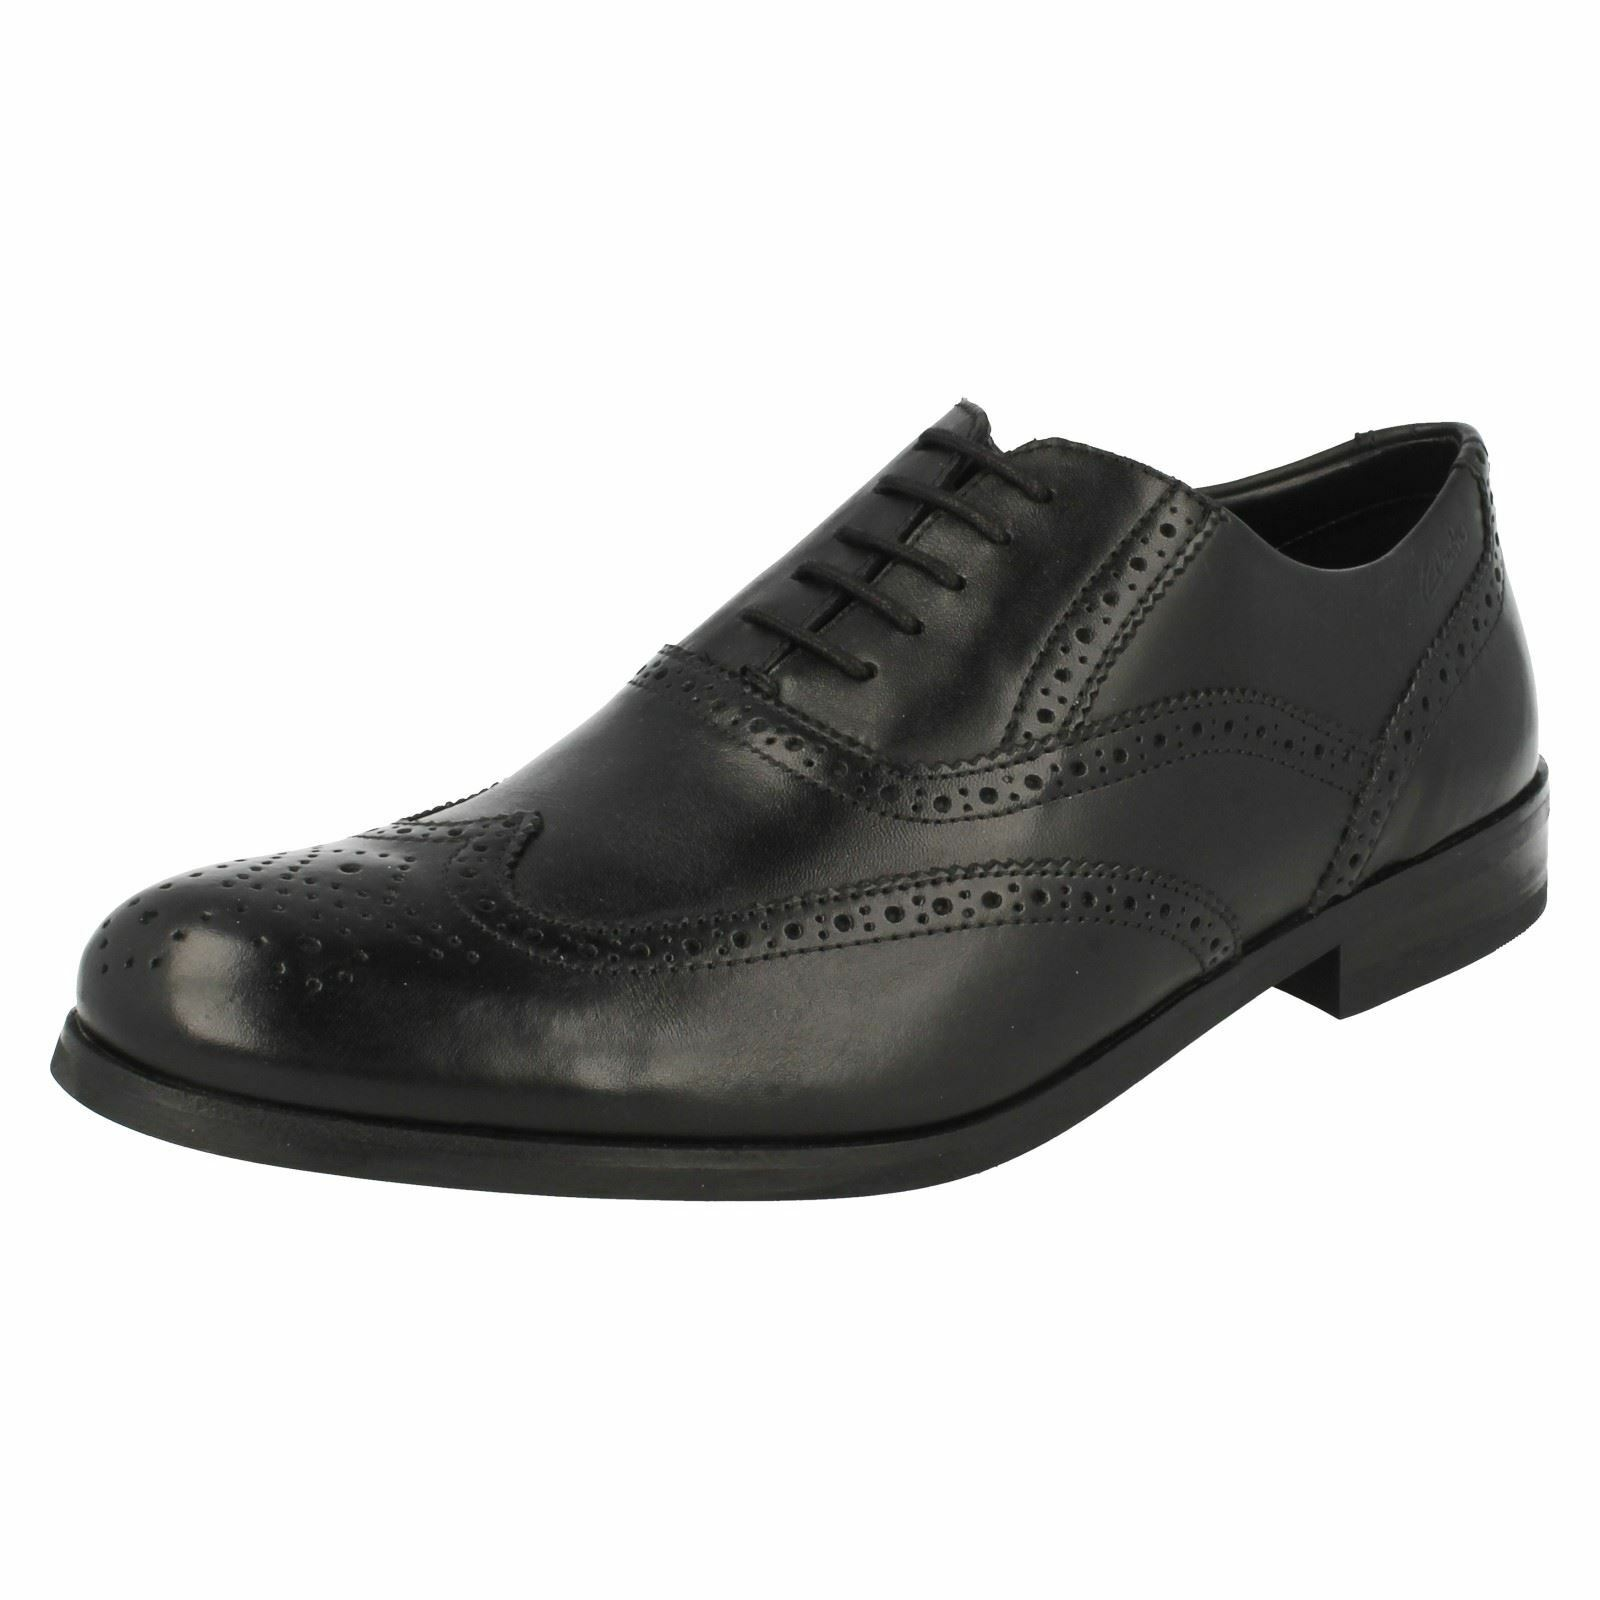 Mens Clarks Brogue Formal schuhe 'Brint Brogue'